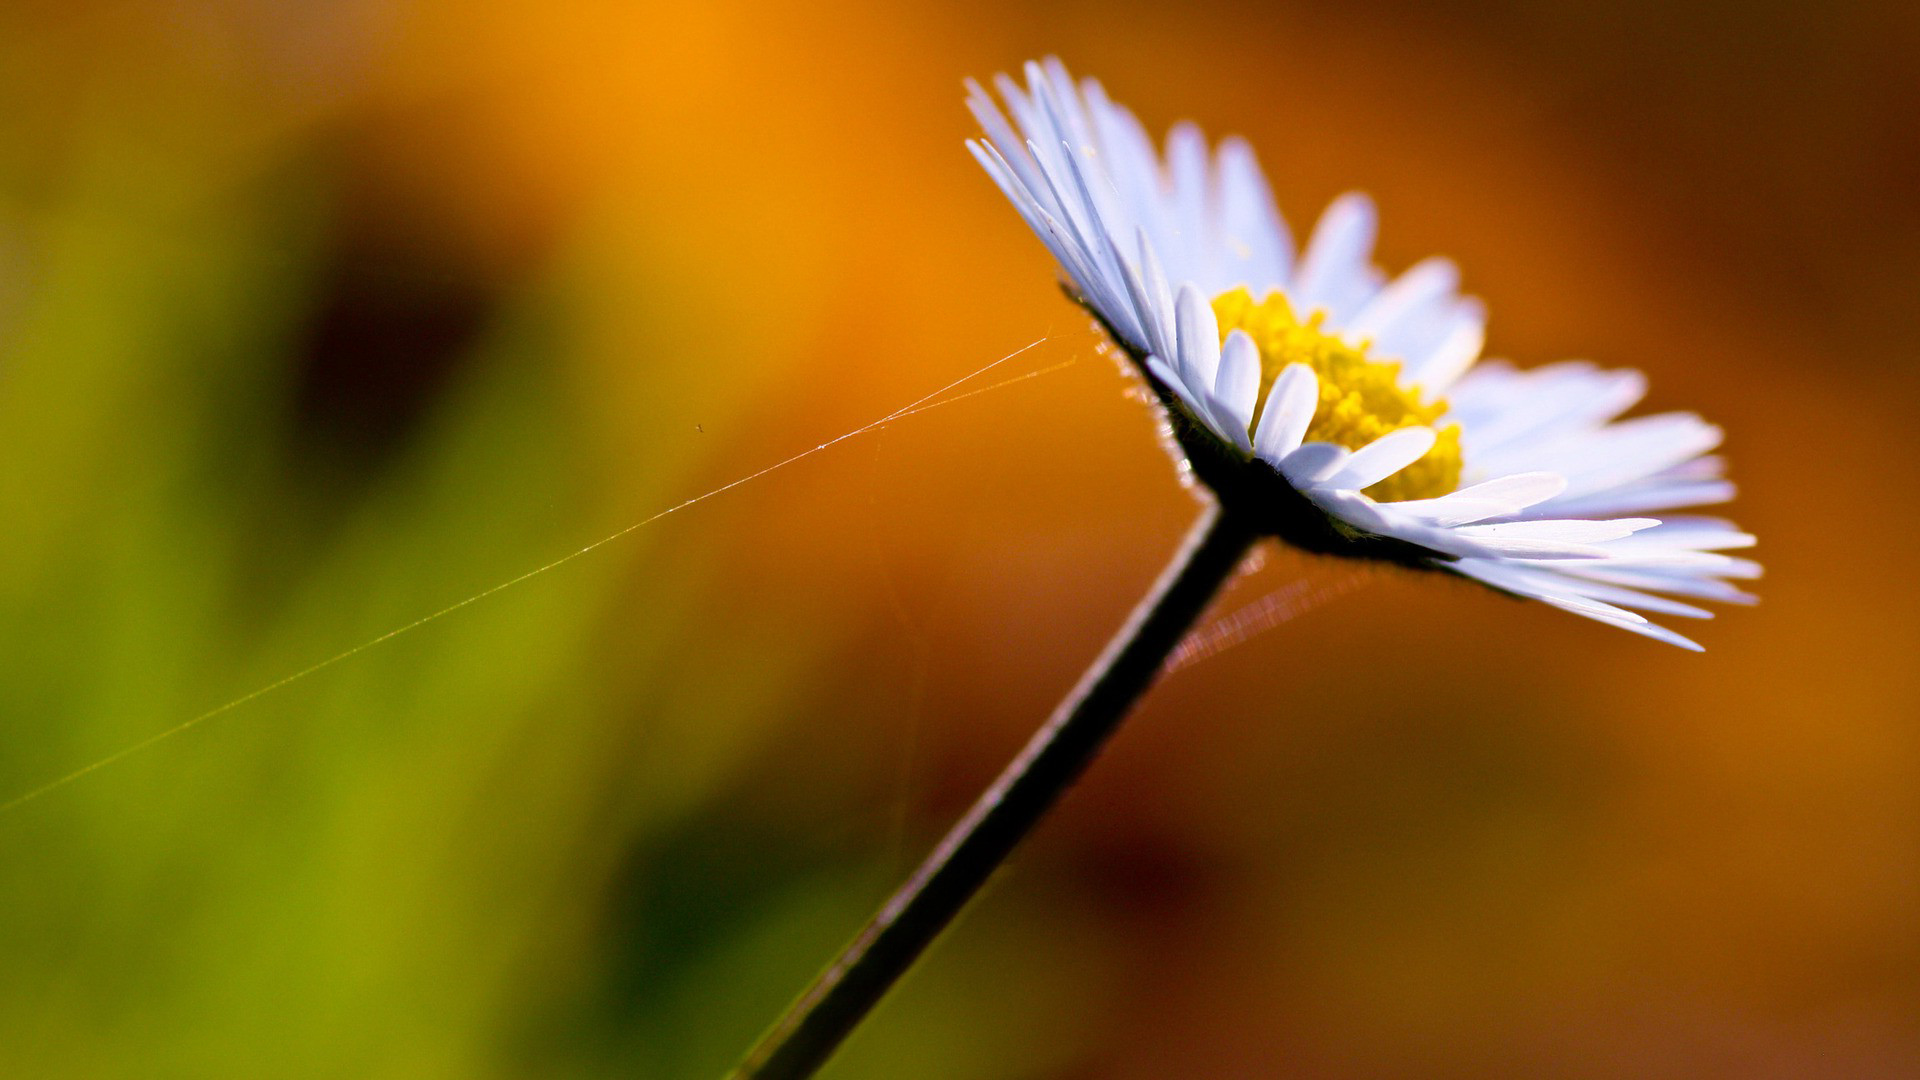 Macro Flowers Wallpaper